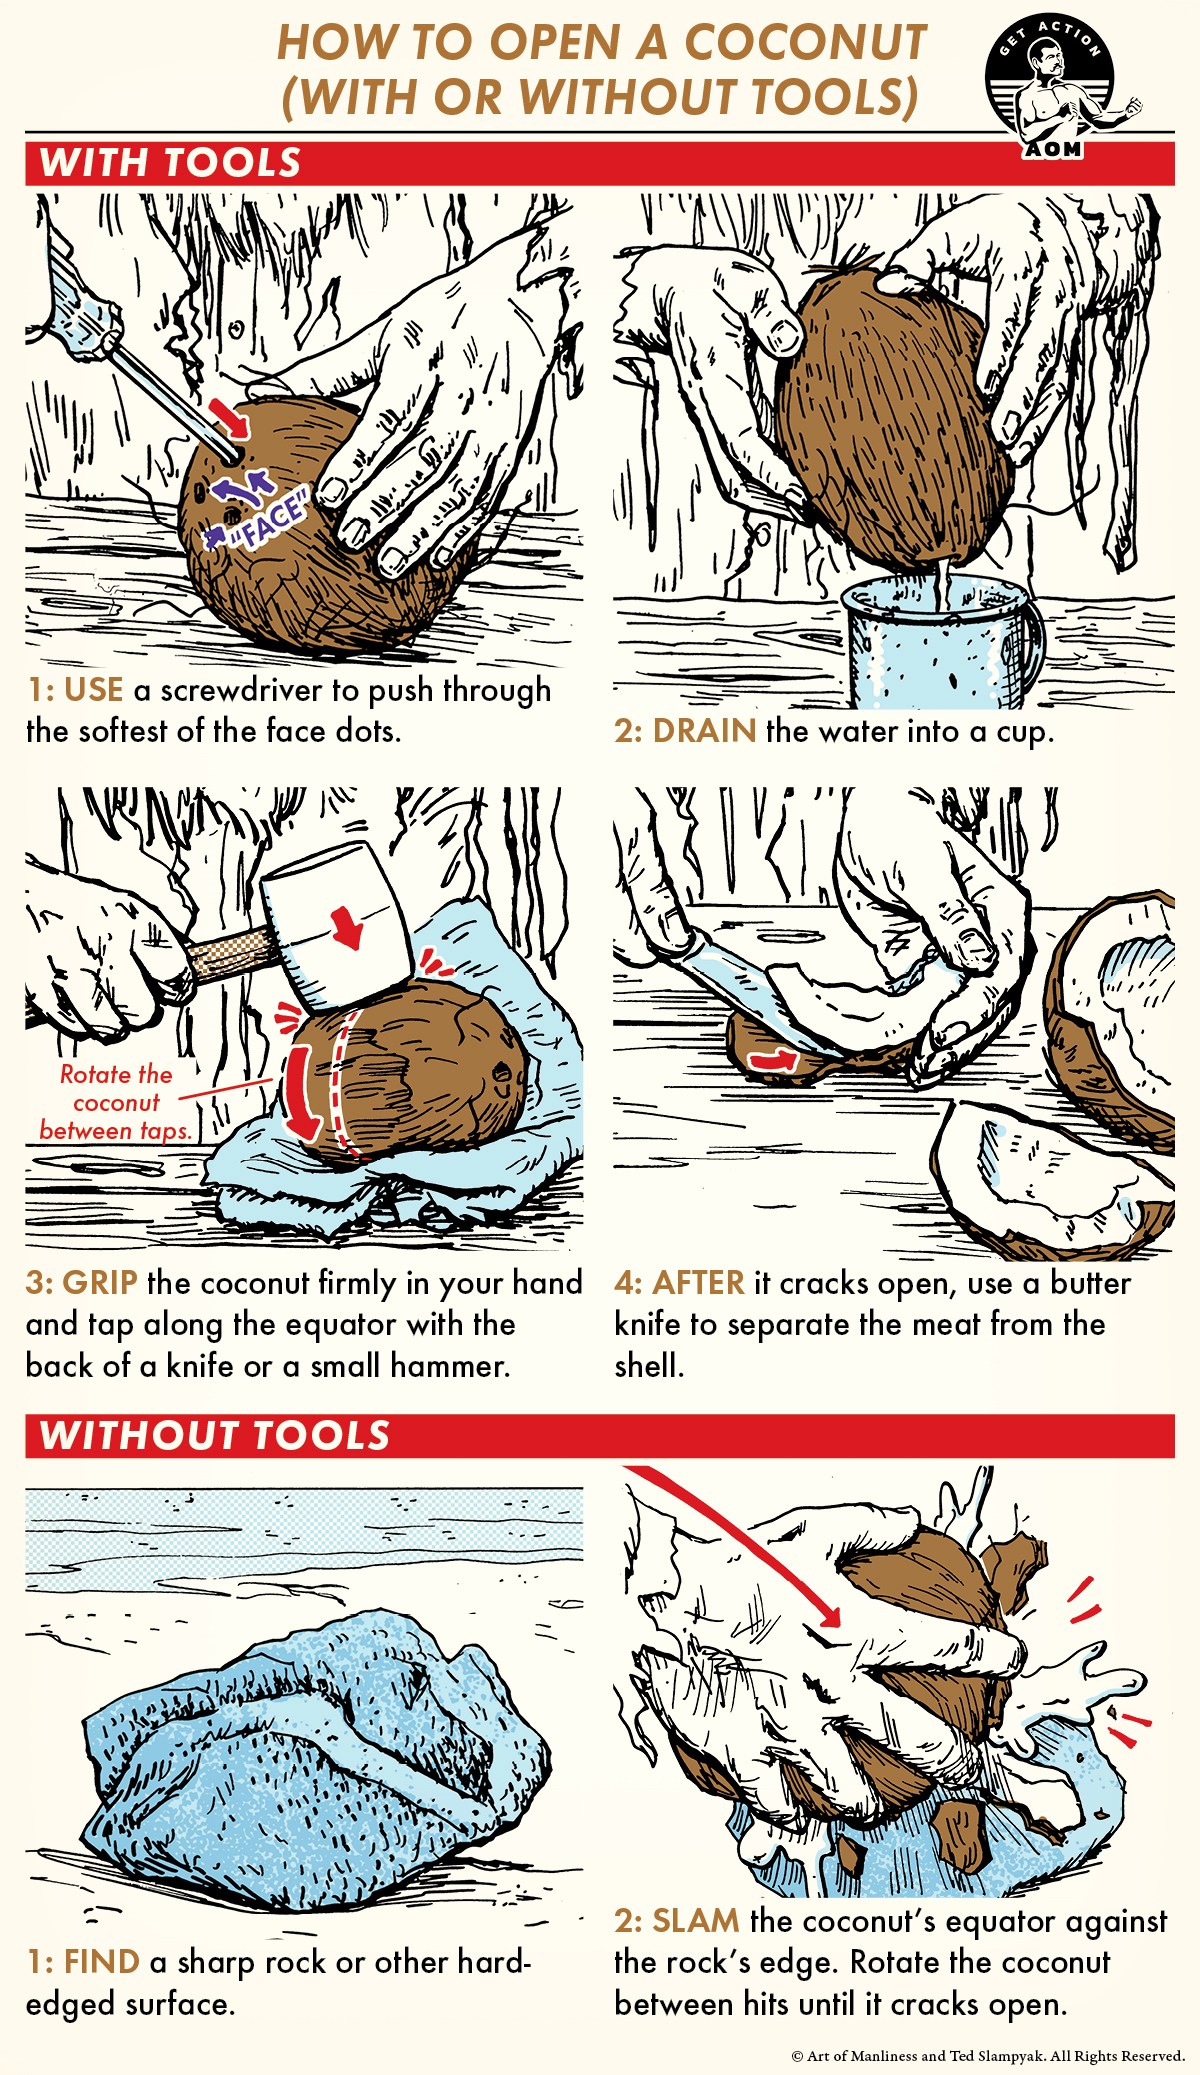 A comic guide How to open a coconut with hammer and screw driver.